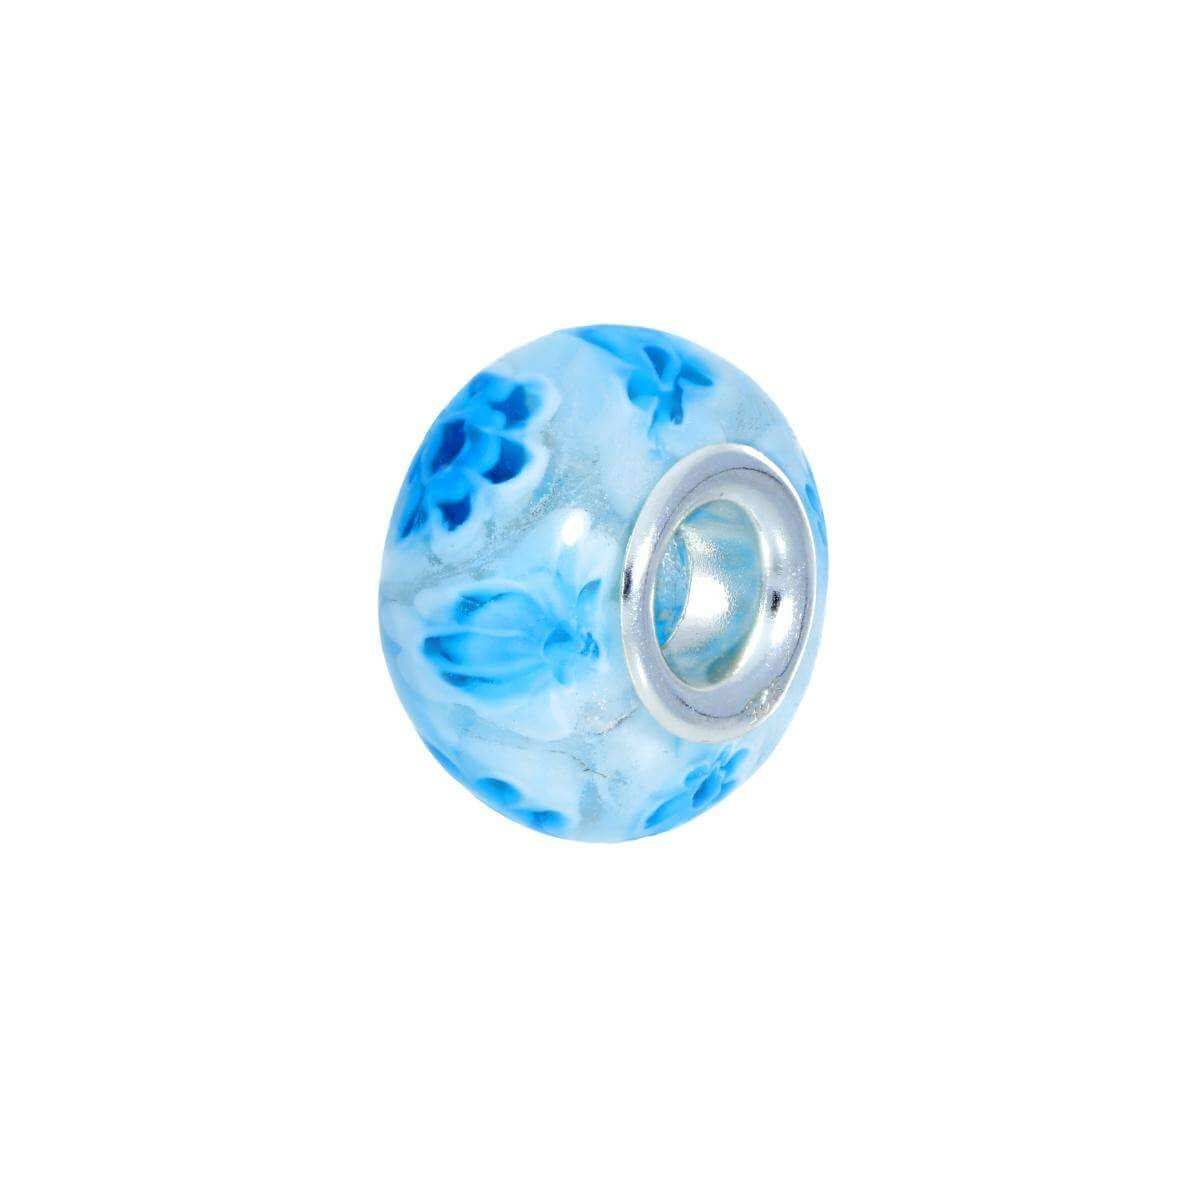 Sterling Silver and Floating Blue Flowers Glass Bead Charm